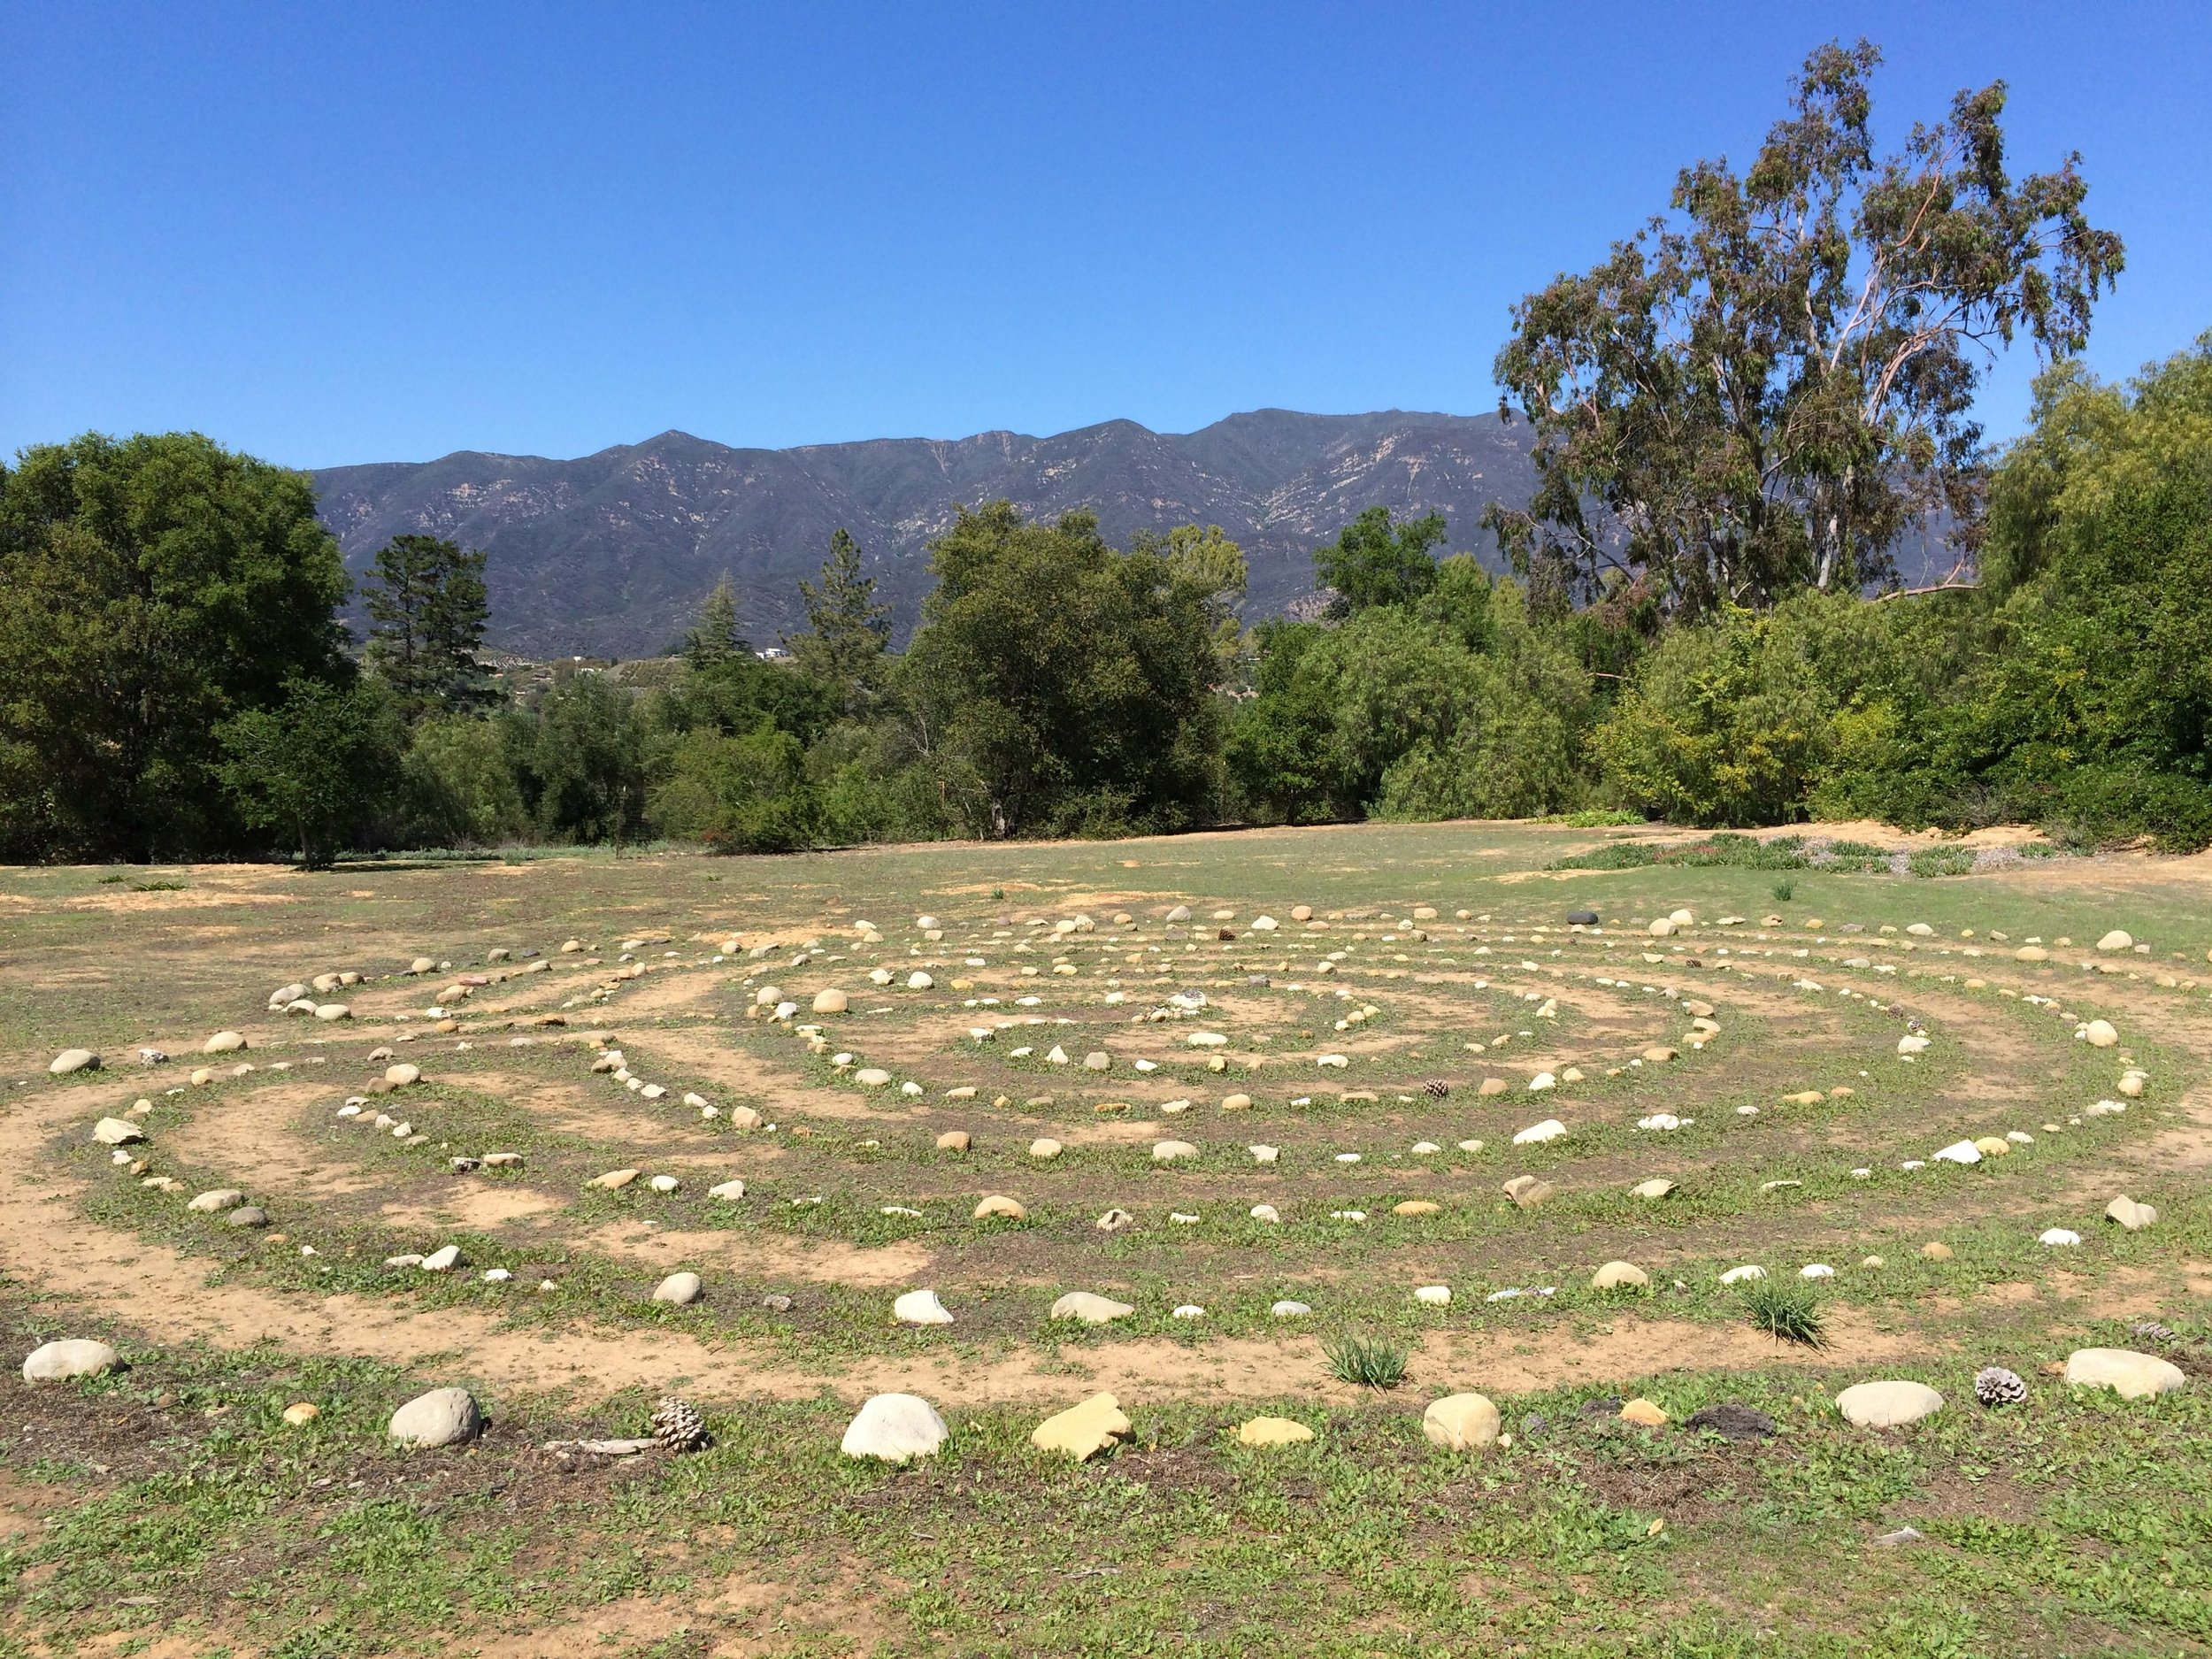 The Ojai labyrinth, the first and only other labyrinth I have walked